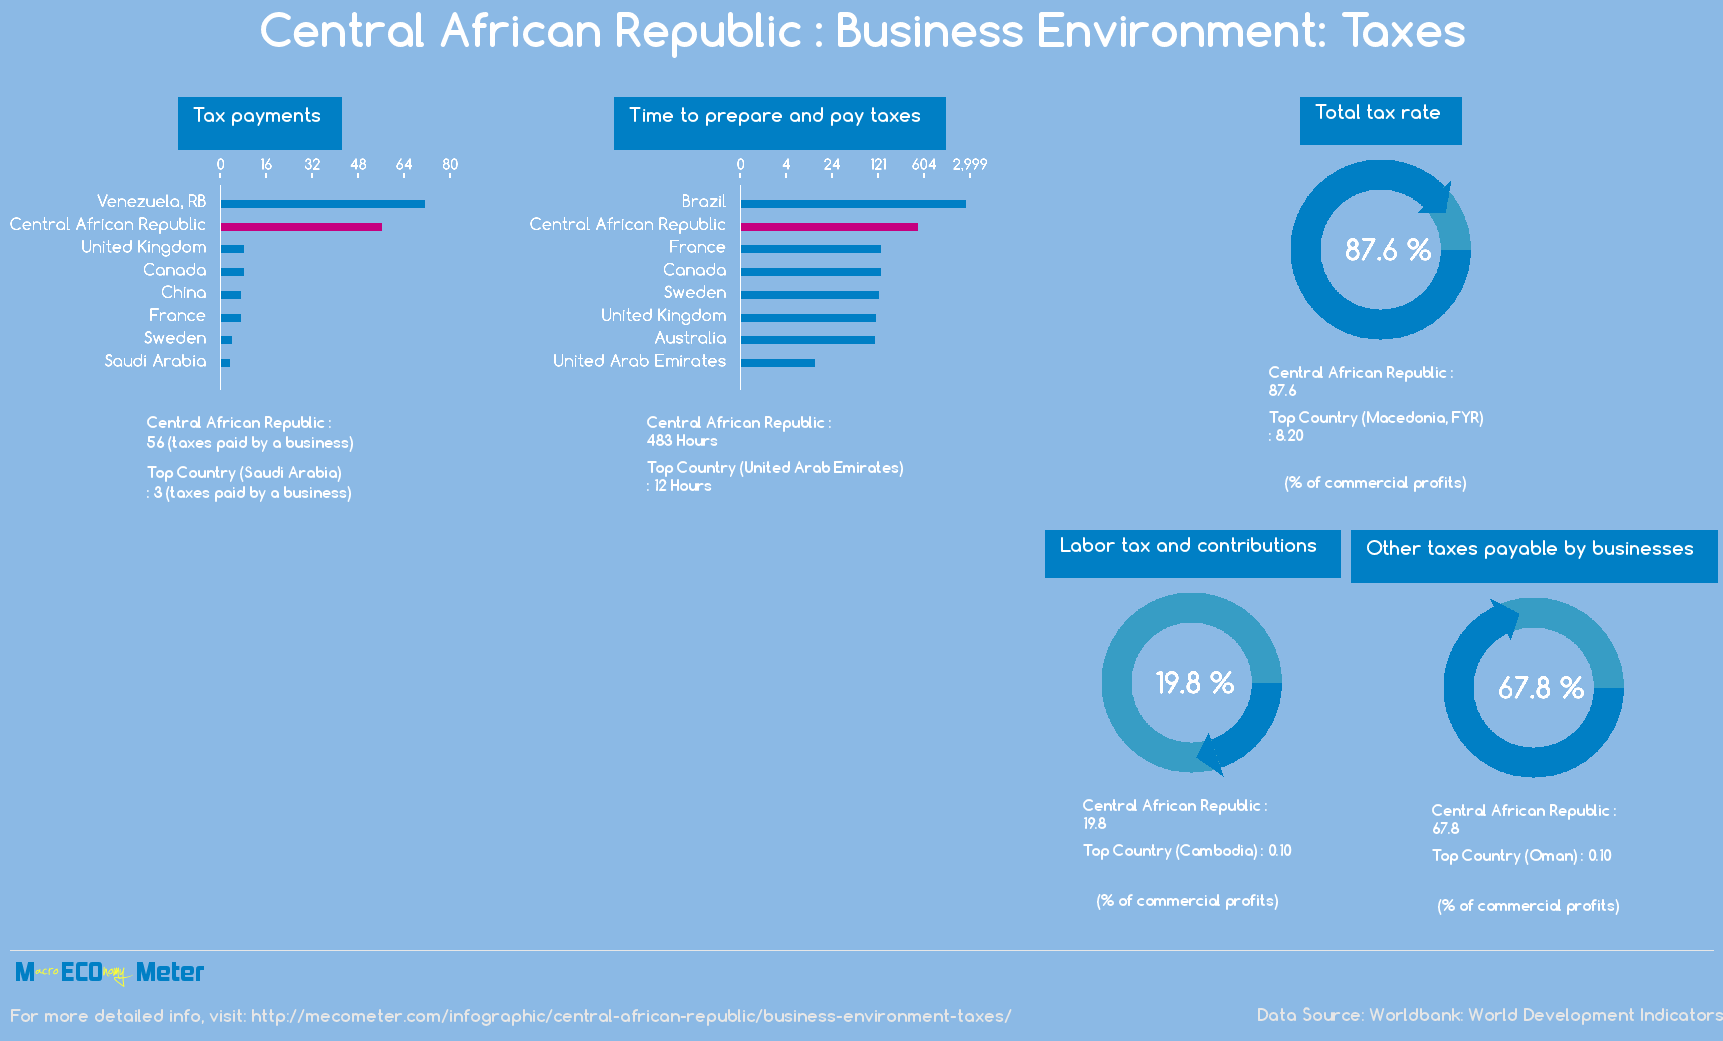 Central African Republic : Business Environment: Taxes